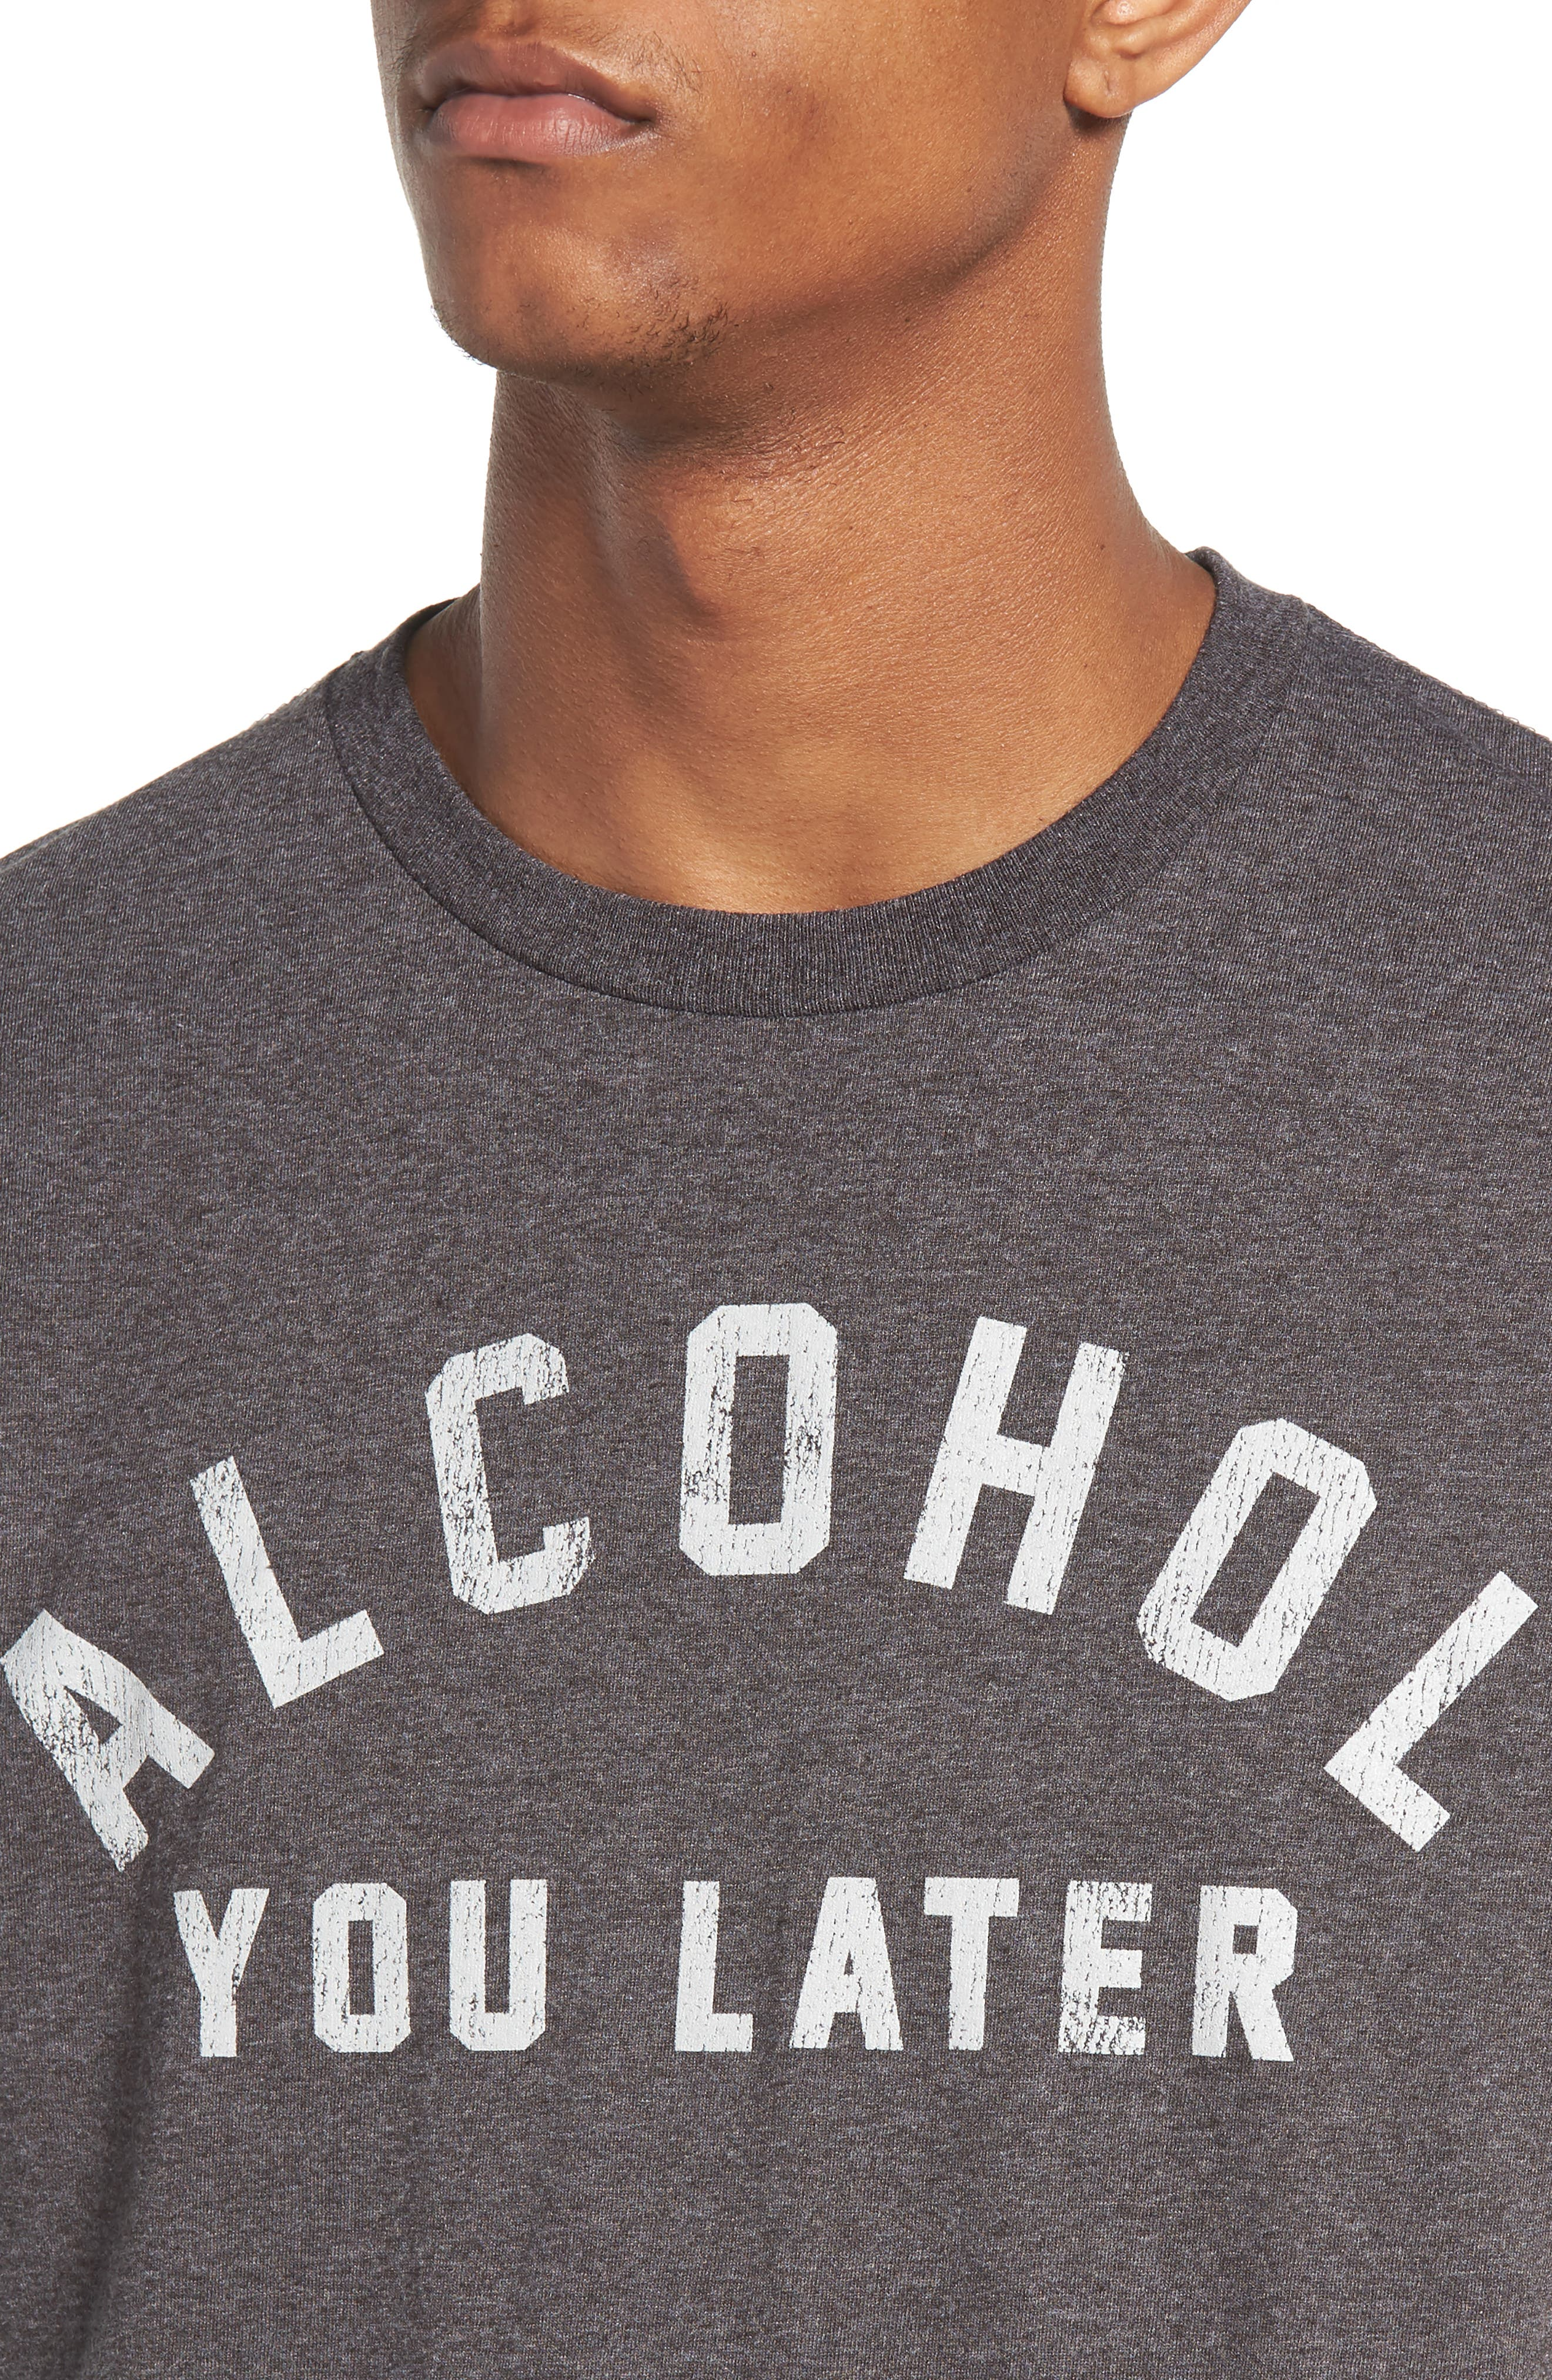 Alcohol You Later T-Shirt,                             Alternate thumbnail 4, color,                             Grey Charcoal Heather Alcohol